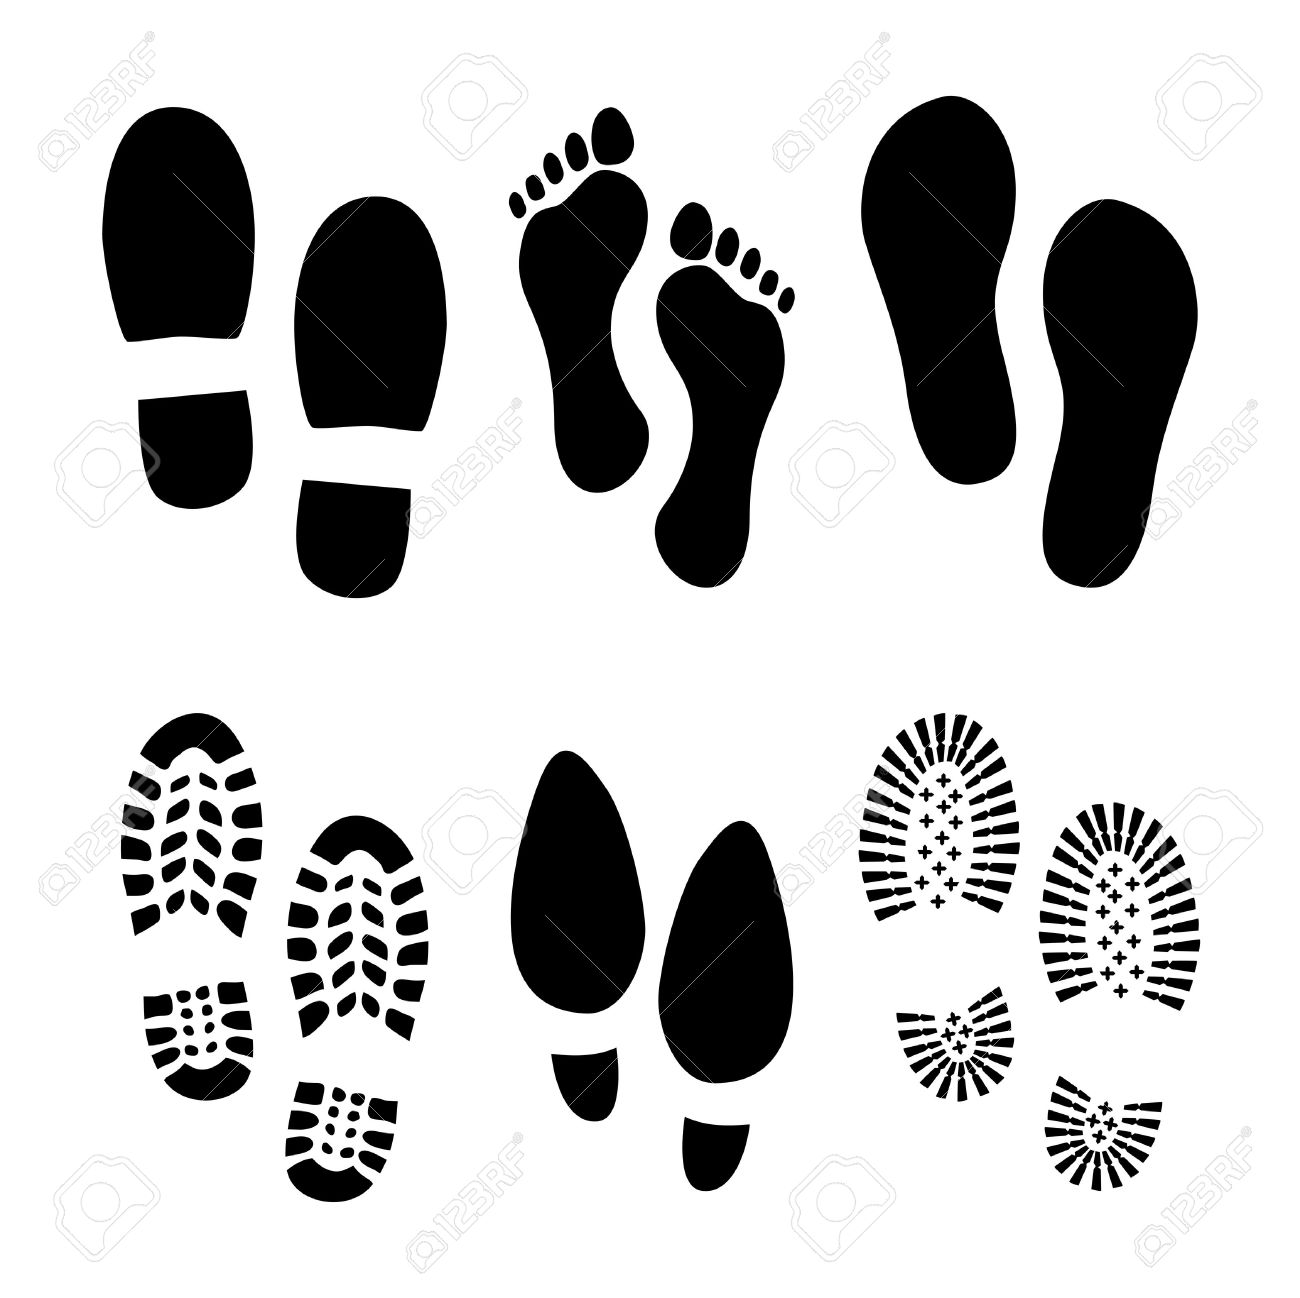 Set of footprints and shoes - 39796818